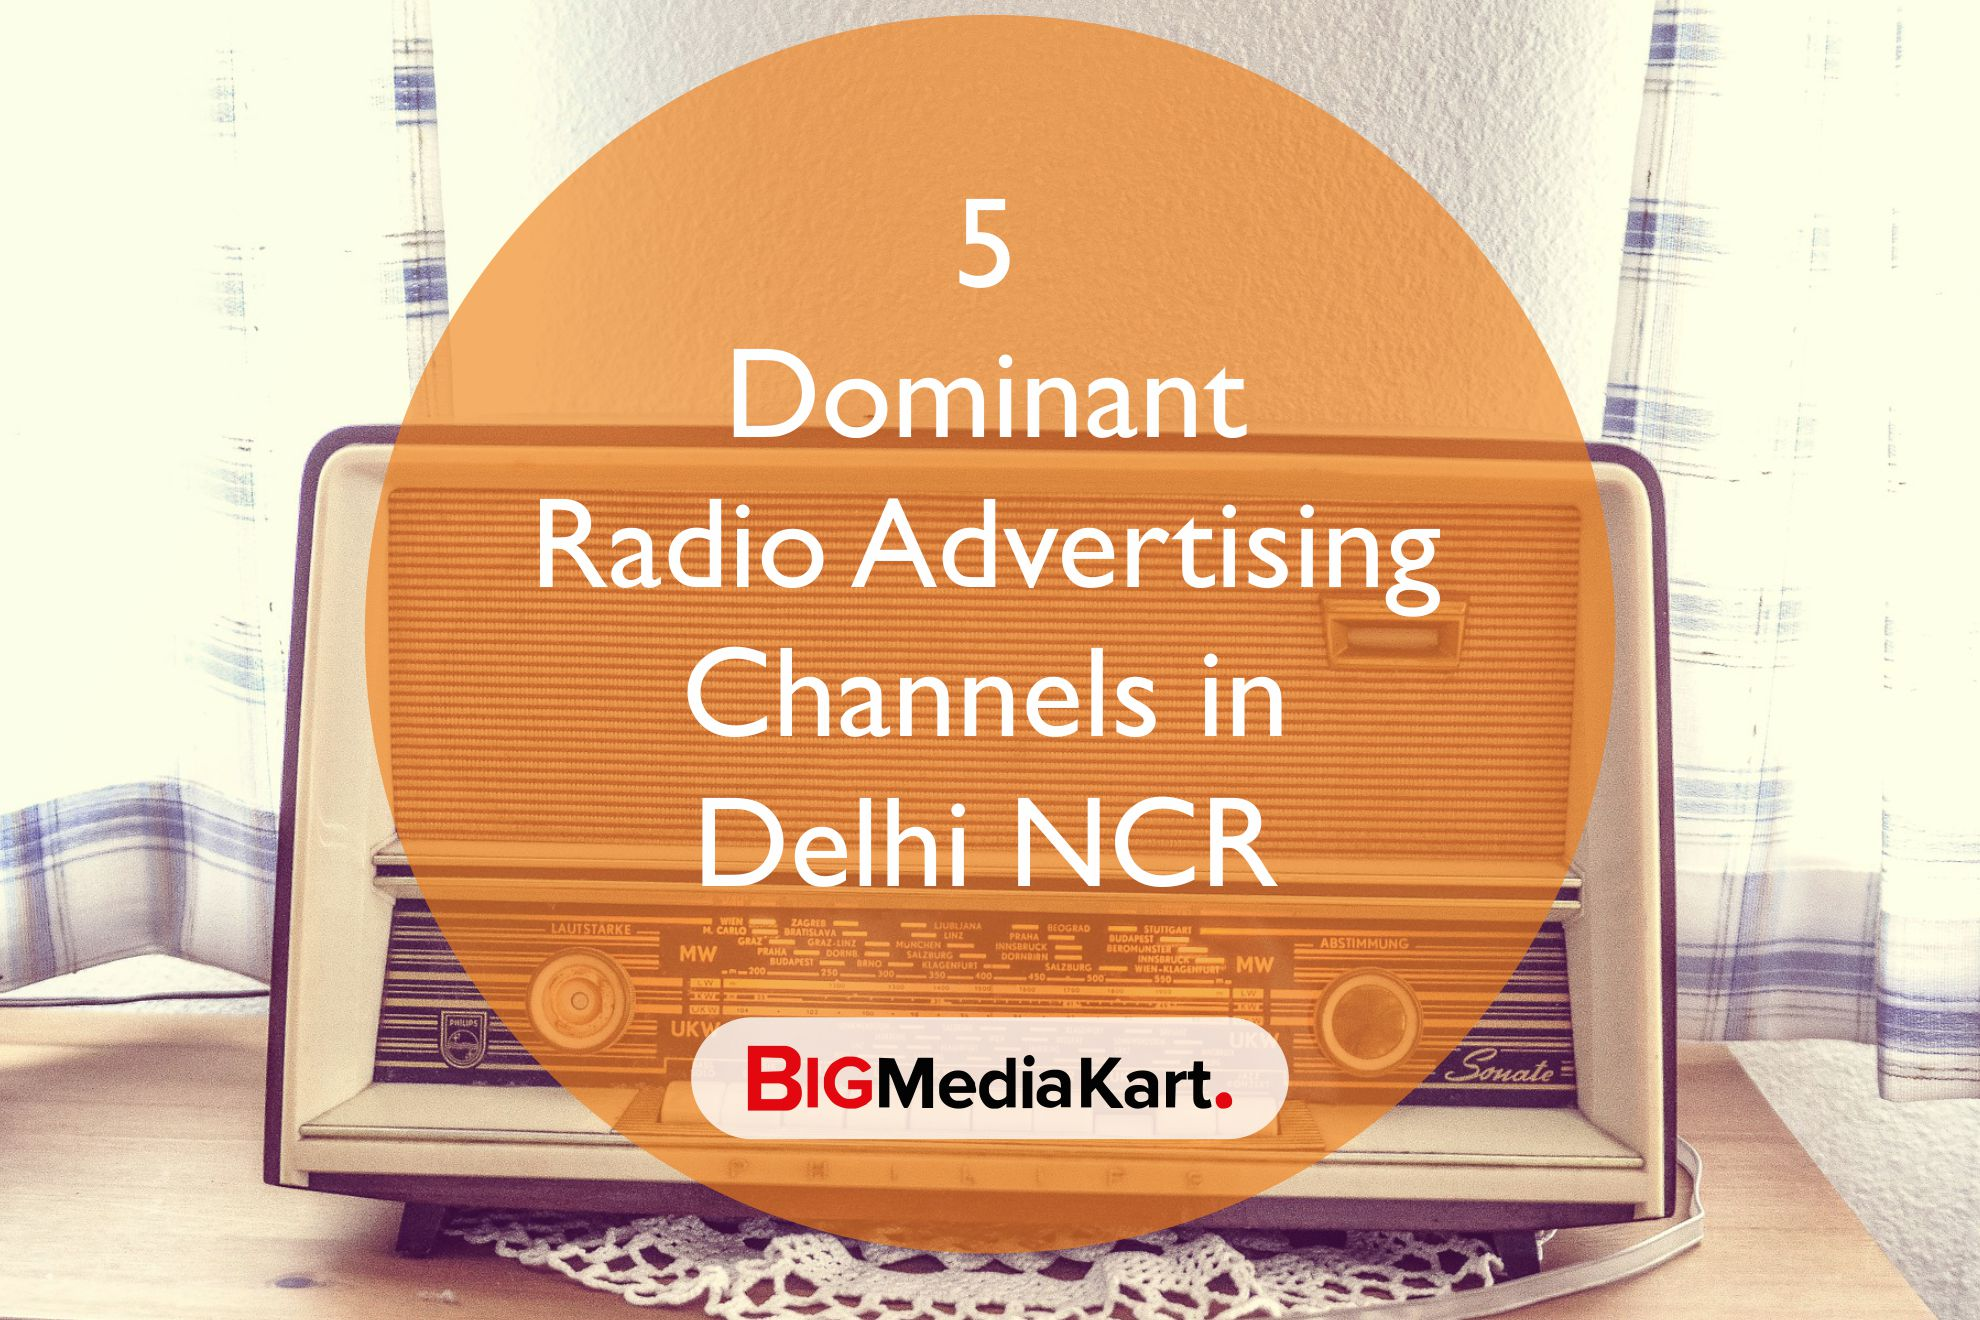 5 Dominant FM Radio Advertising Channels in Delhi NCR